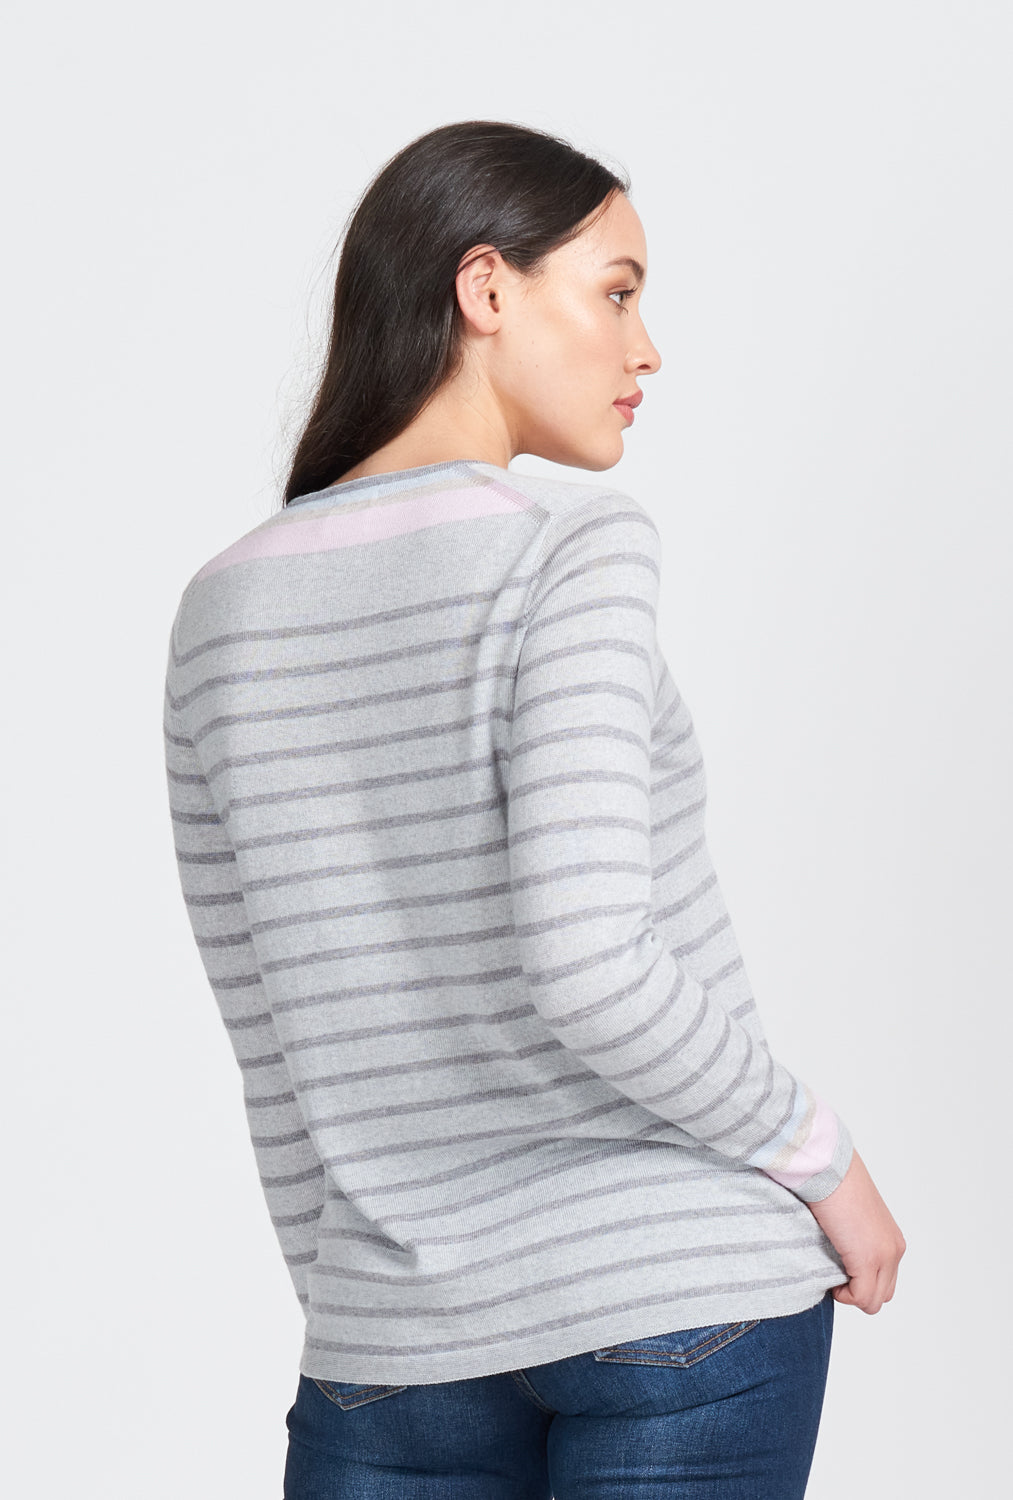 Womens crew neck jumper. Horizontal stripes with three colour contrast cuffs. Long sleeve. 100% Superfine merino fibre.